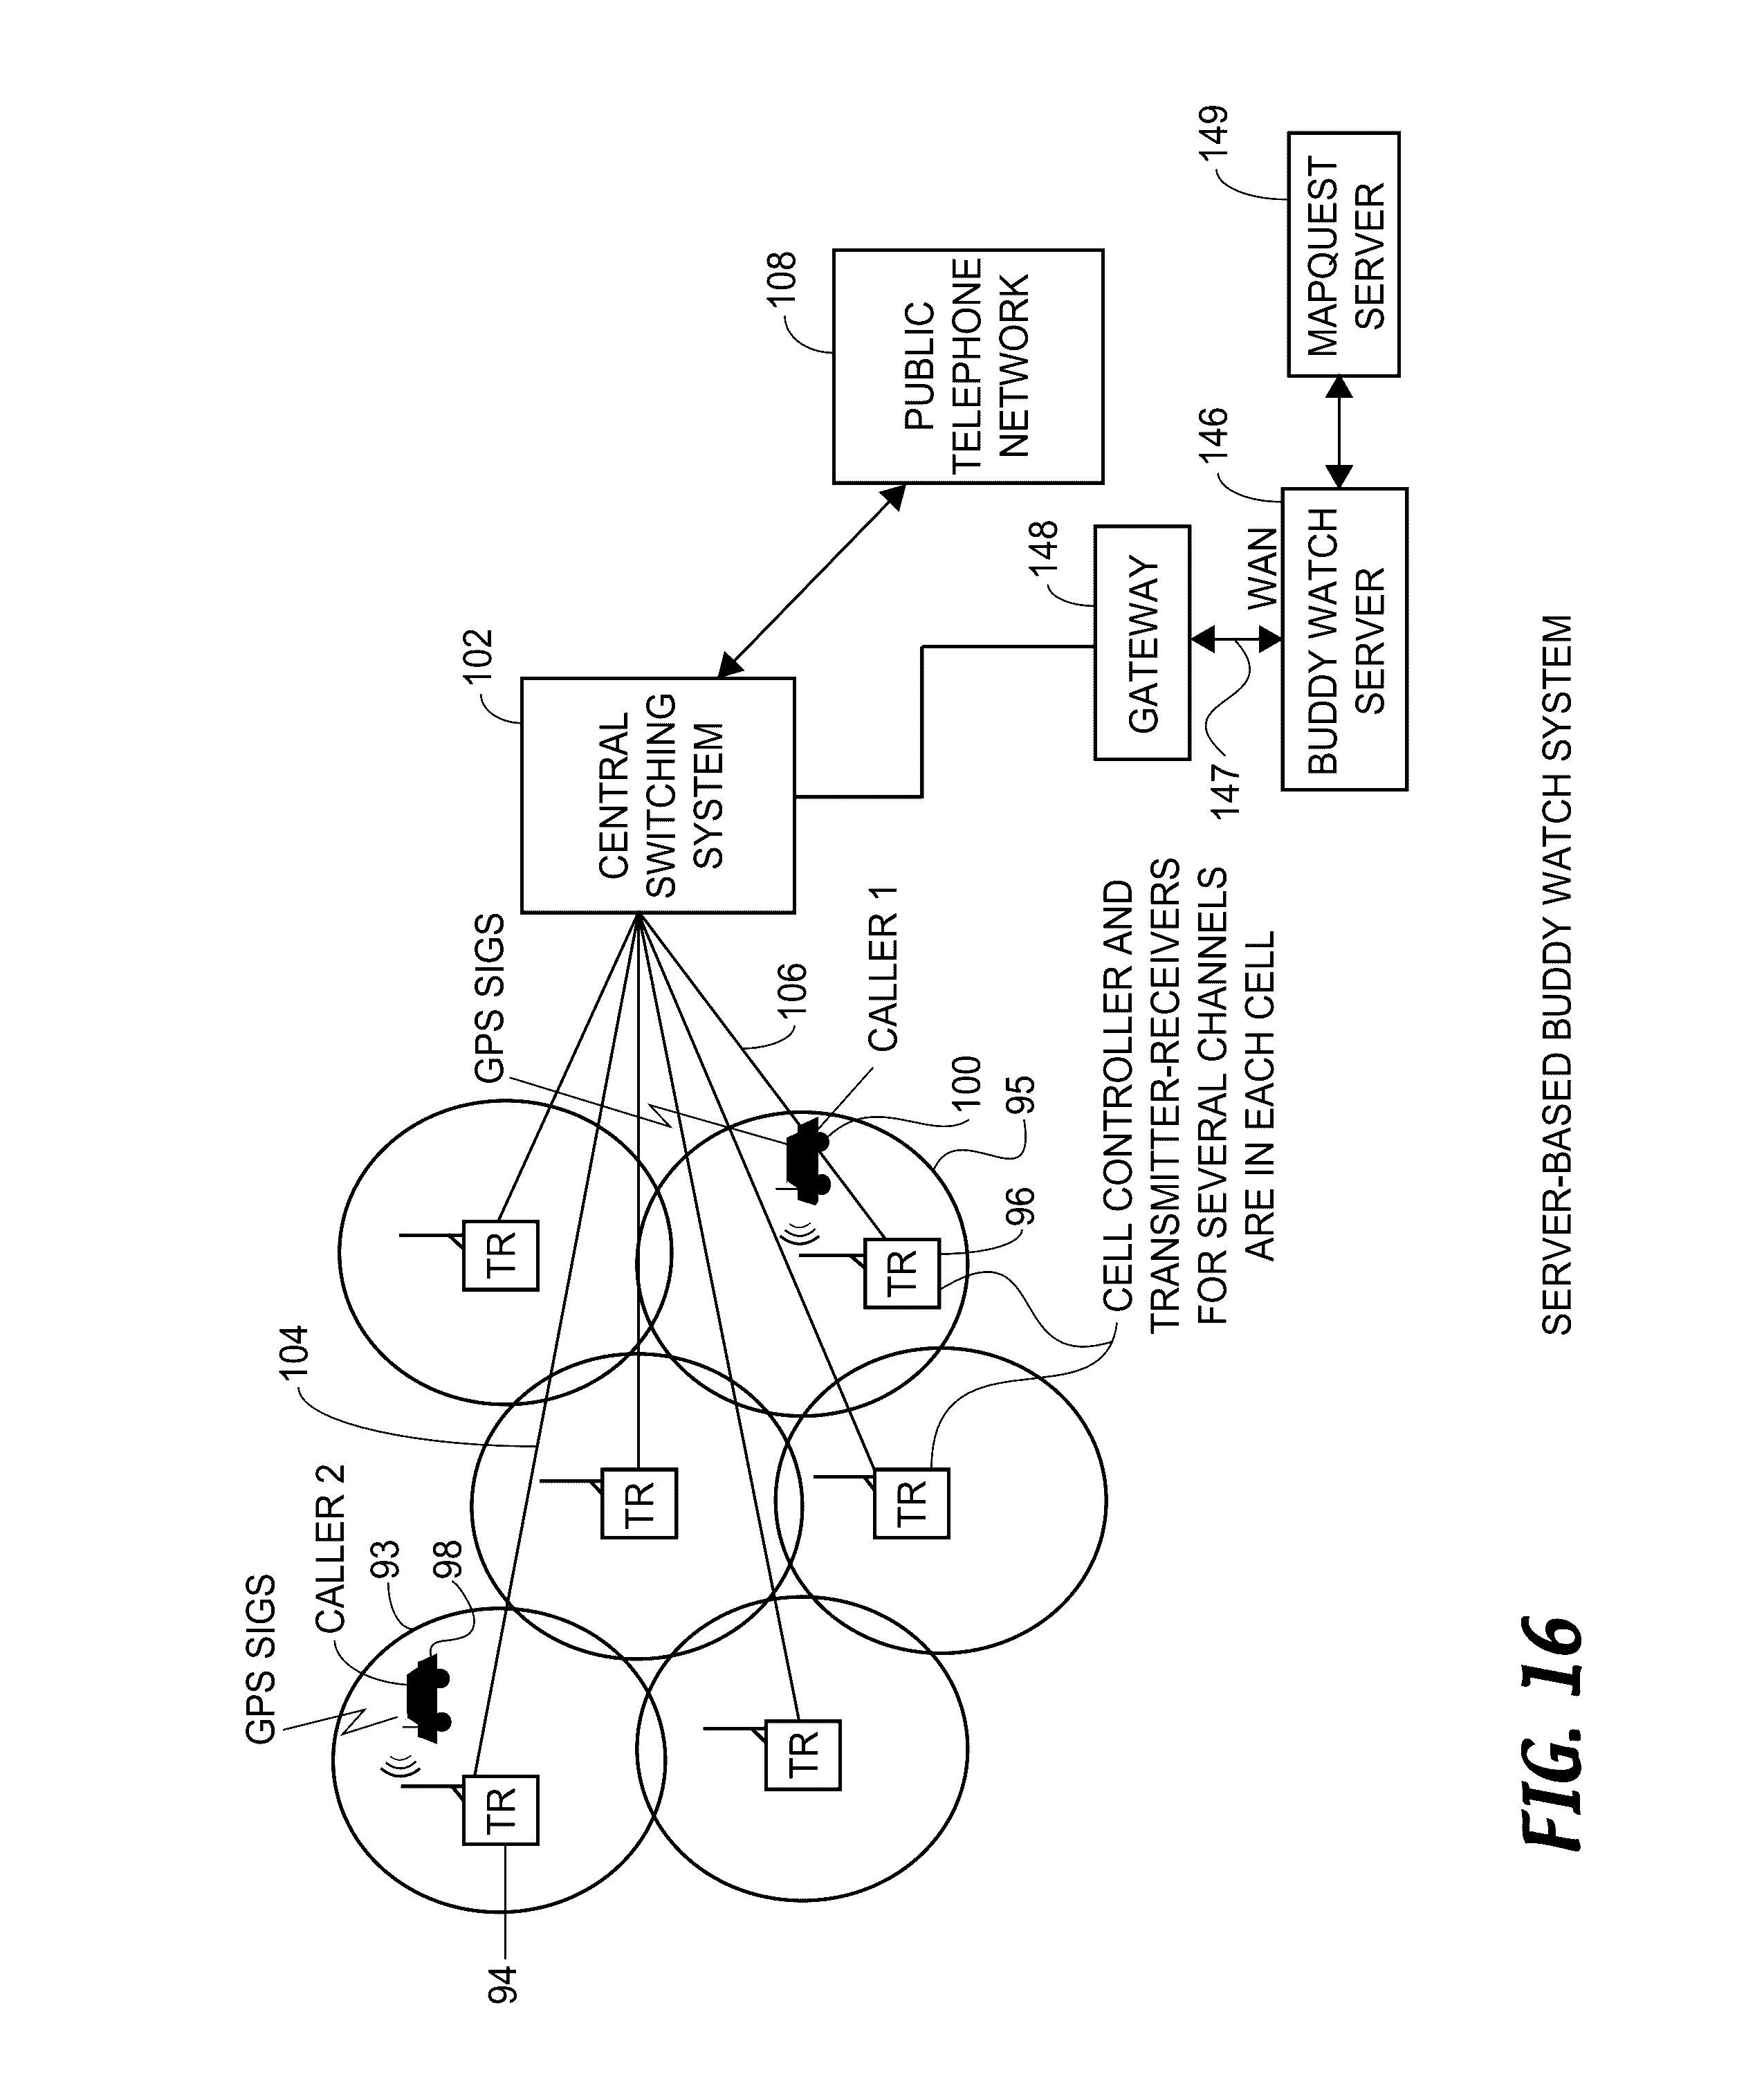 us9467832b2 methods and systems for temporarily sharing position AM Transistor Radio us9467832b2 methods and systems for temporarily sharing position data between mobile device users patents